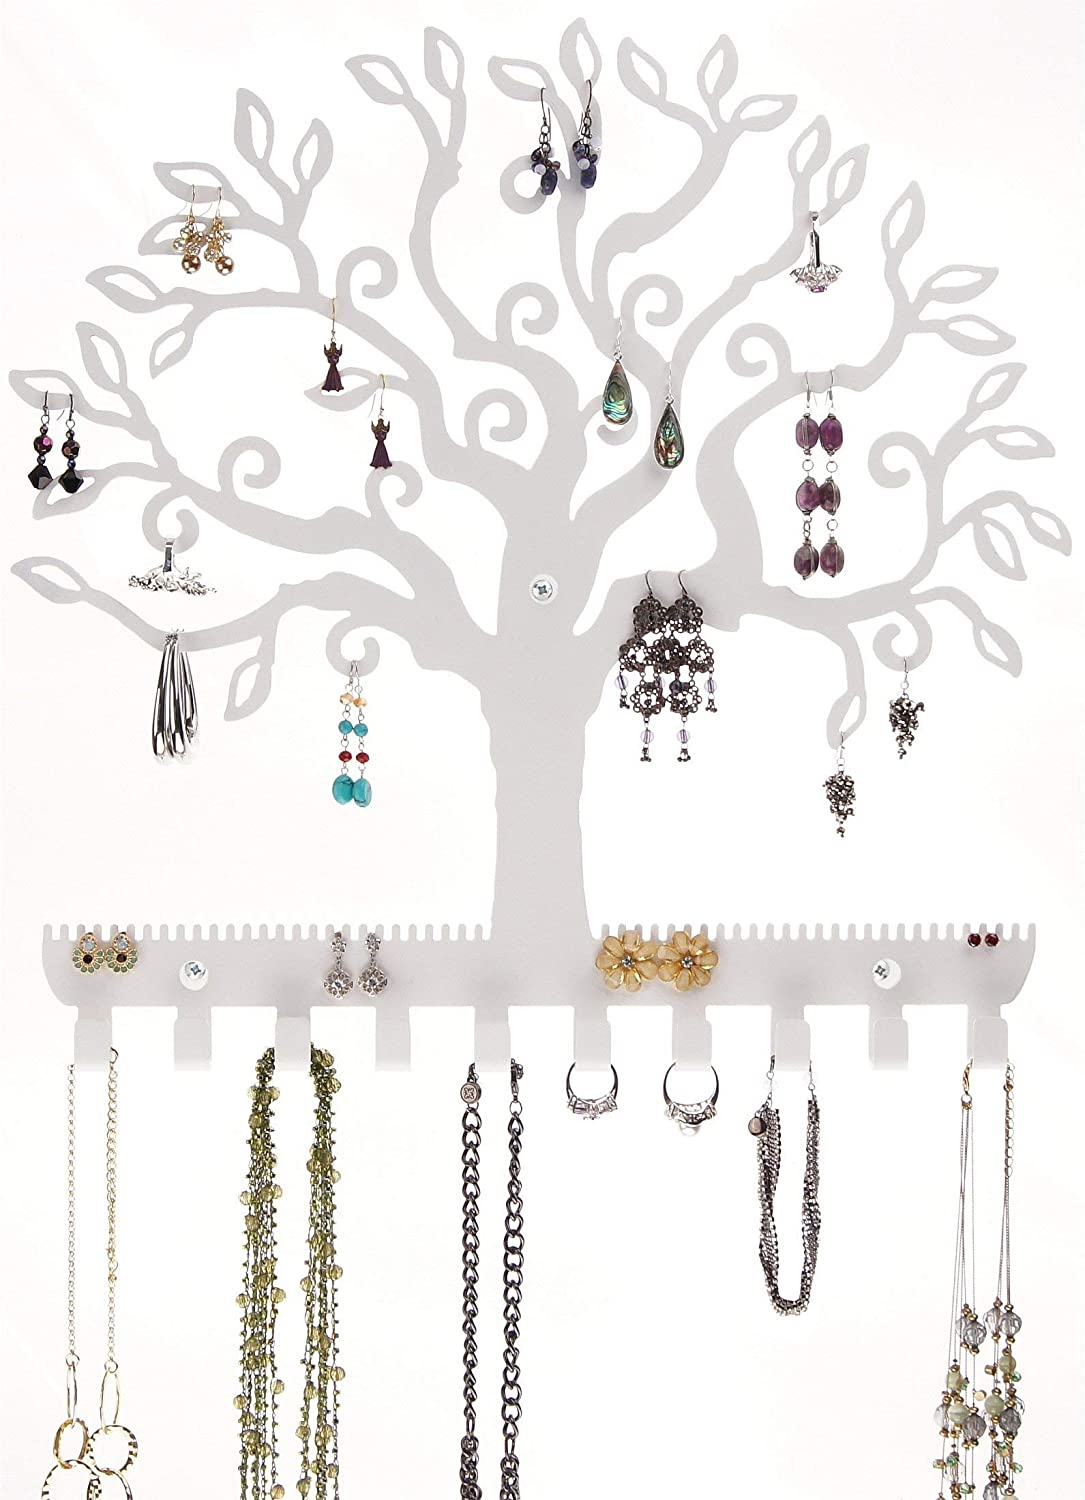 Angelynn's Stud Dangle Earring Holder Wall Mount Hanging Jewelry Organizer Display Necklace Jewelry Storage Rack, Tree of Life White